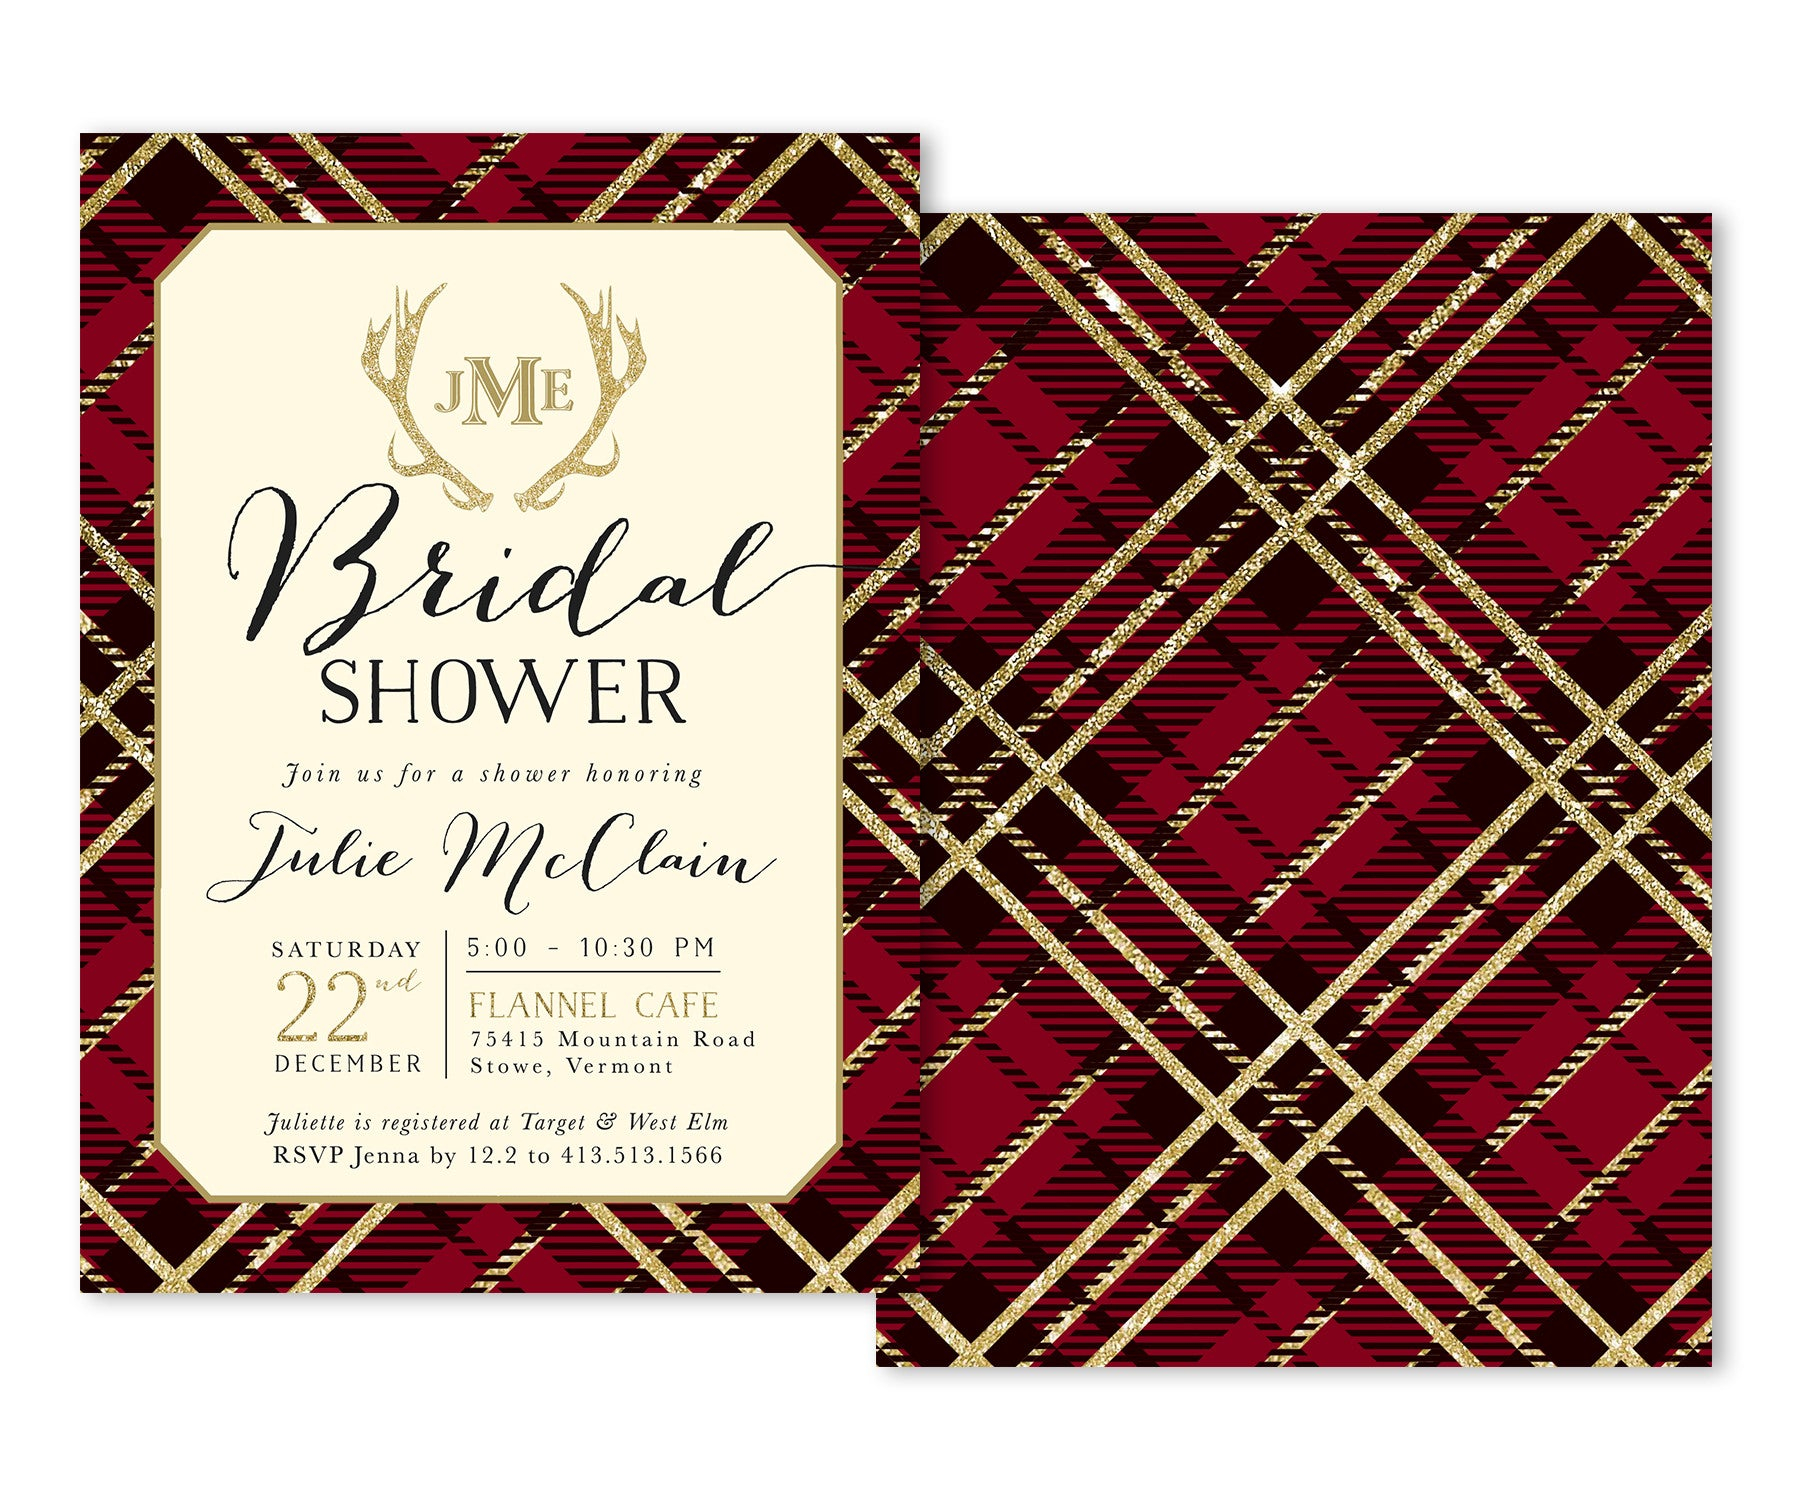 Holiday Bridal Shower Invitation: Red Plaid, Flannel, Antlers ...